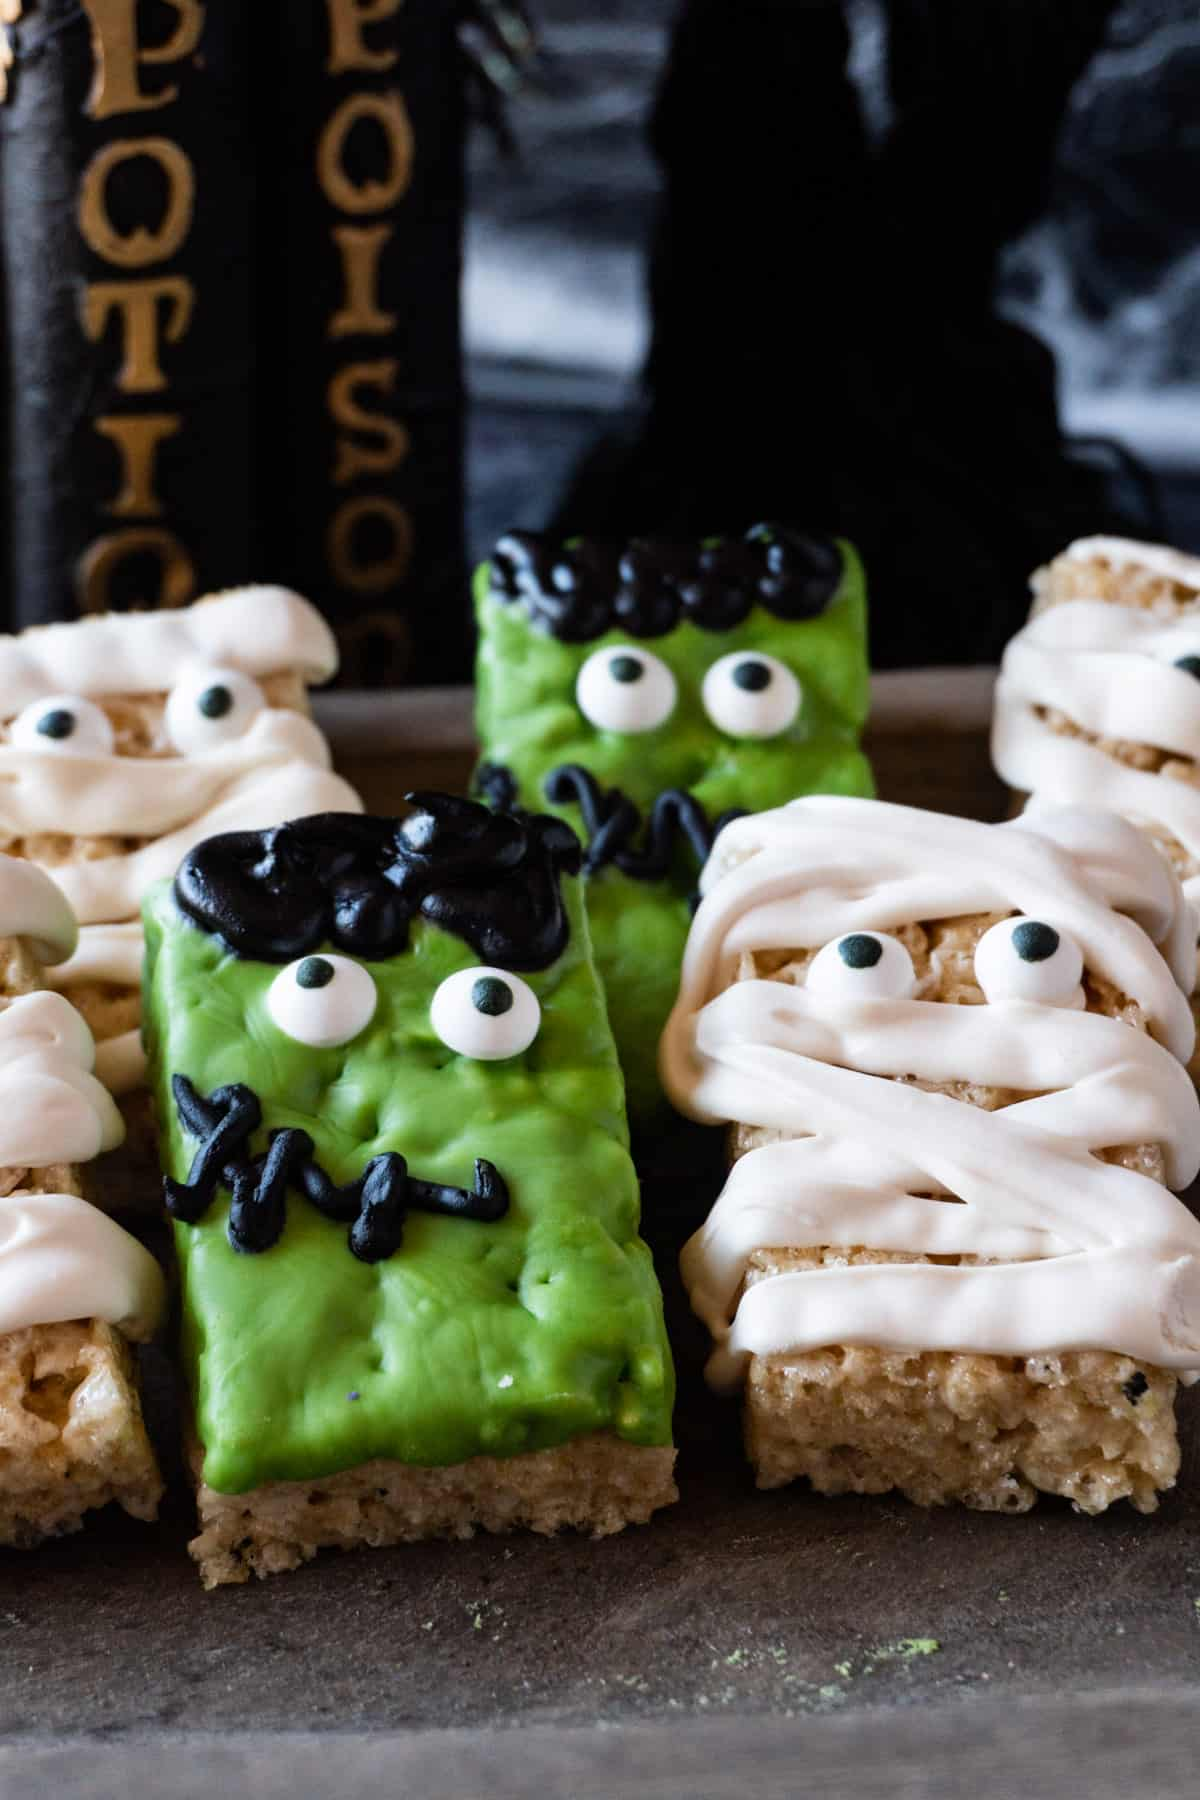 Frankenstein and Mummy rice crispy treats close up